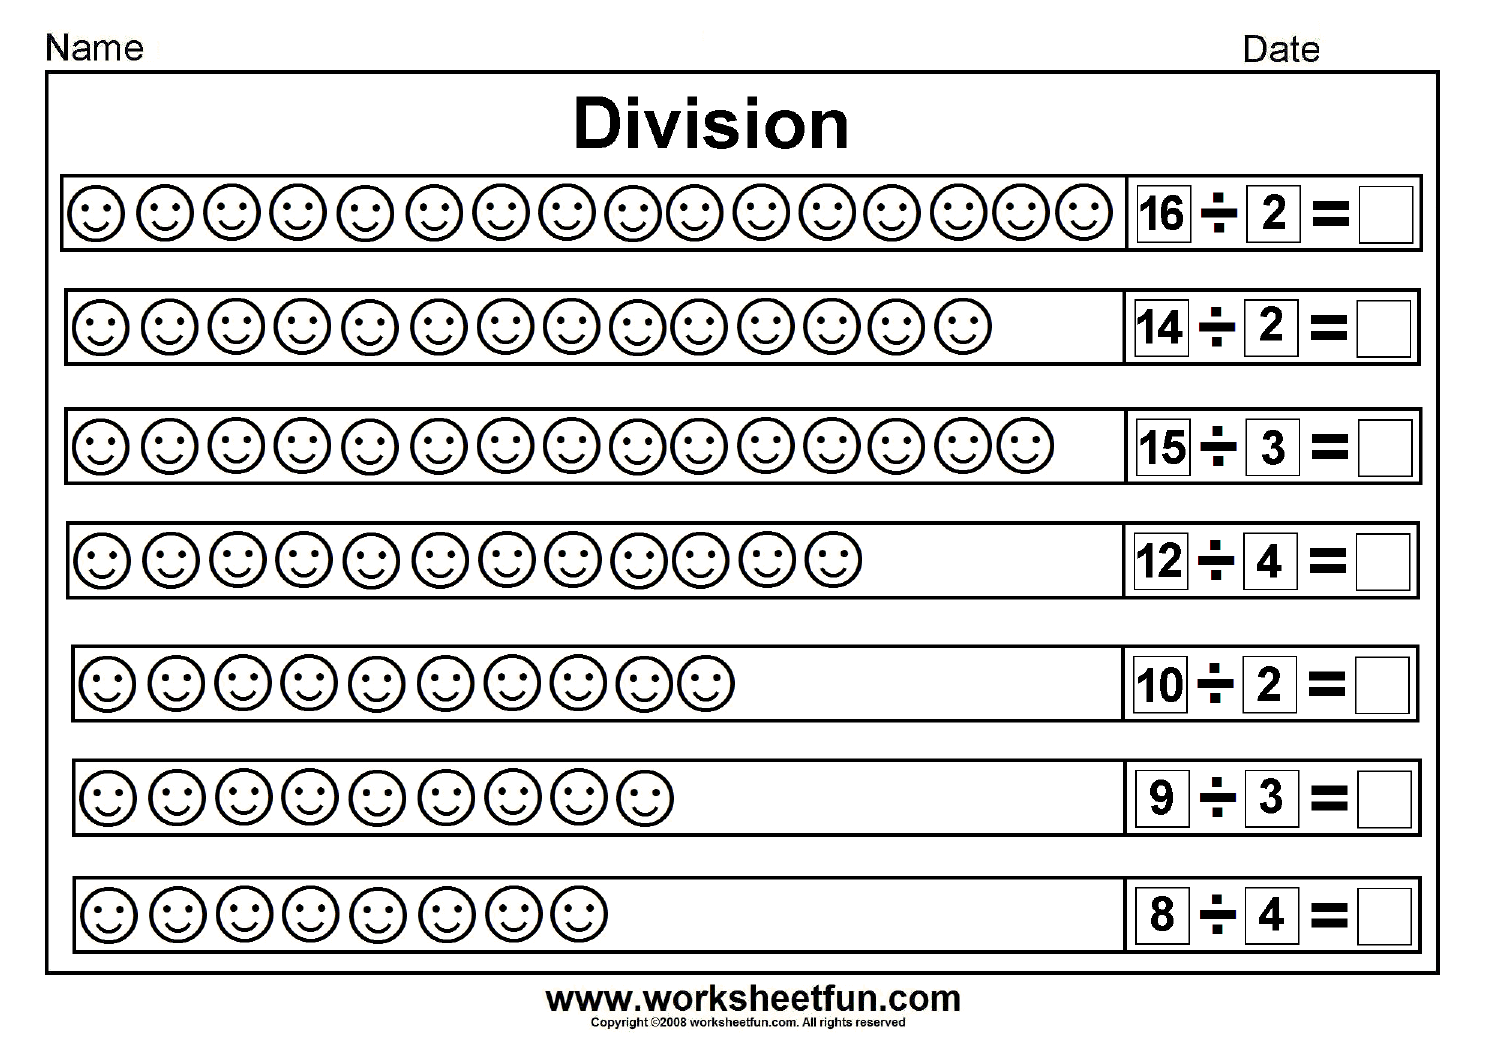 Division Worksheets For 3rd Grade Worksheet – Printable Division Worksheets 3rd Grade